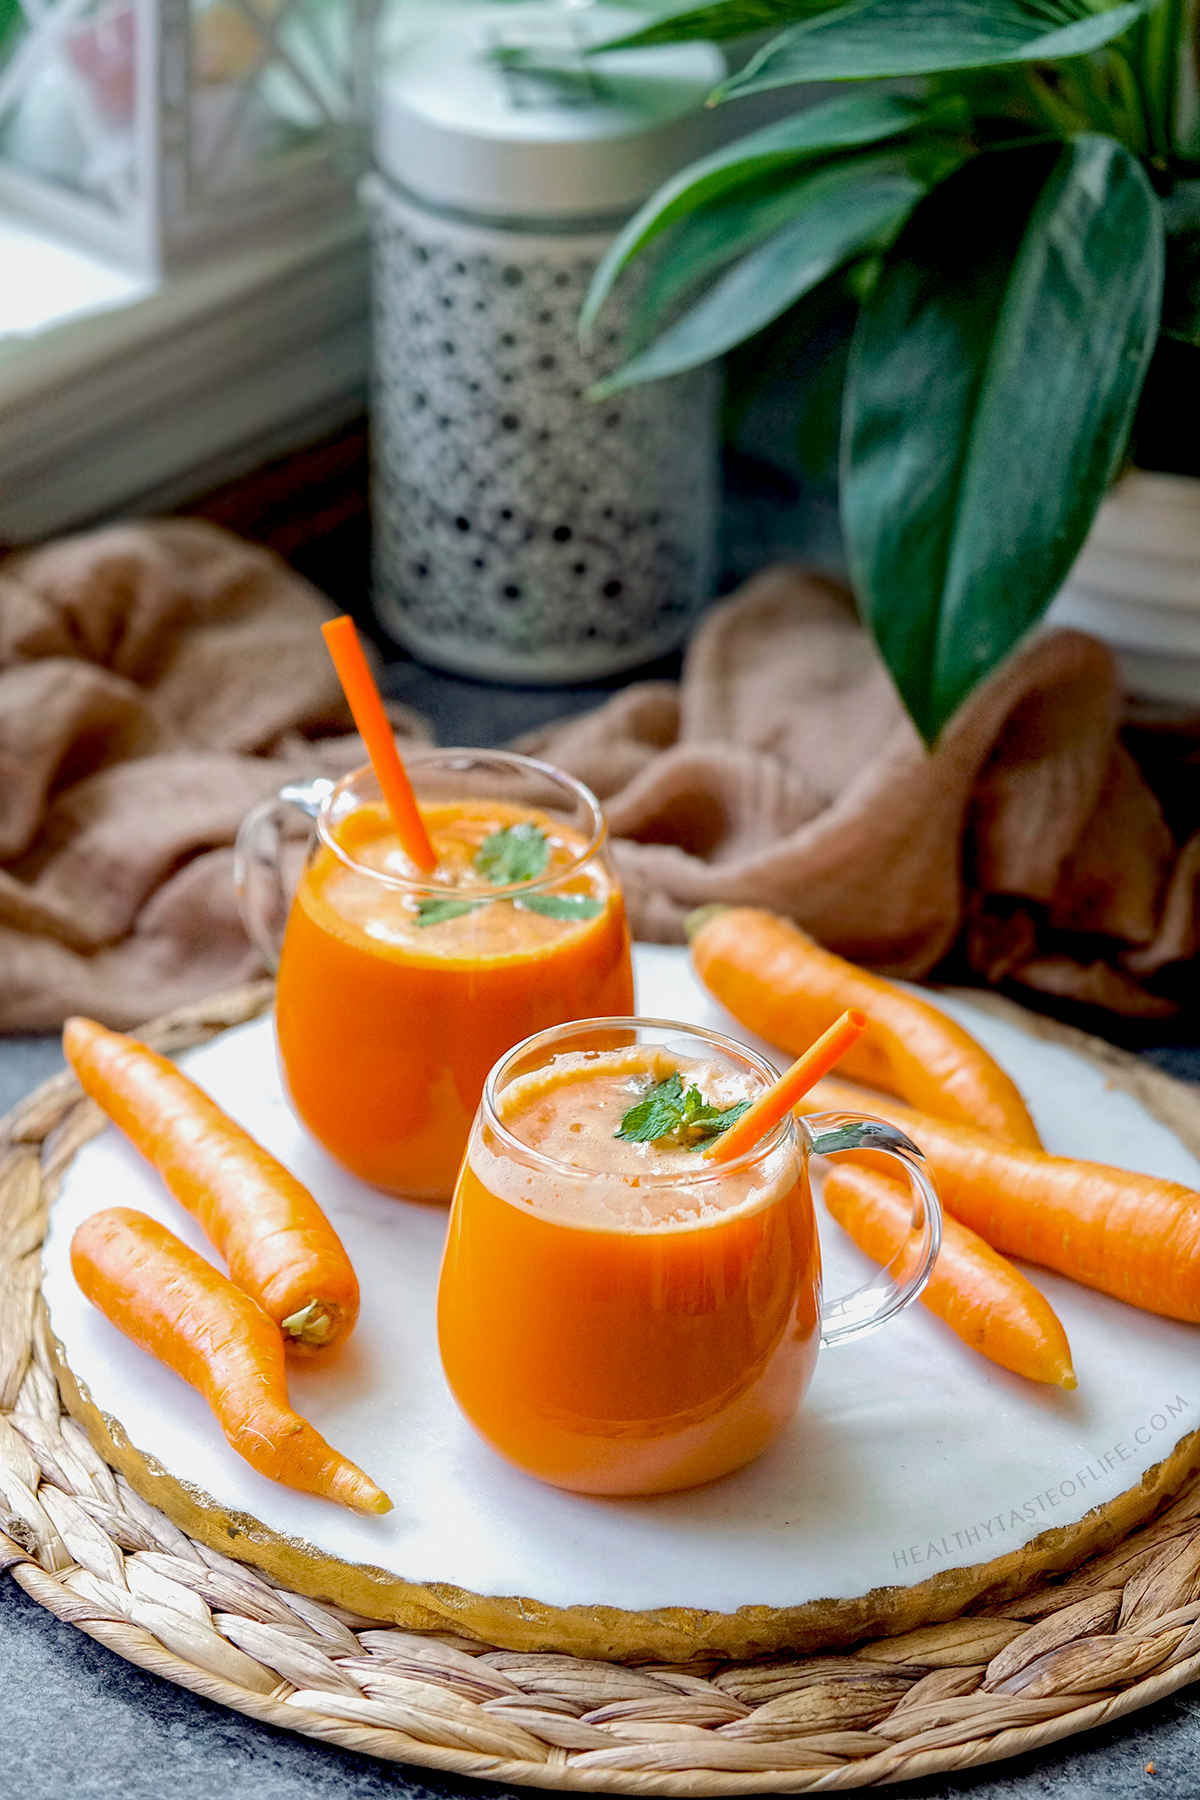 Carrot juicing - homemade carrot juice served in glass mugs.